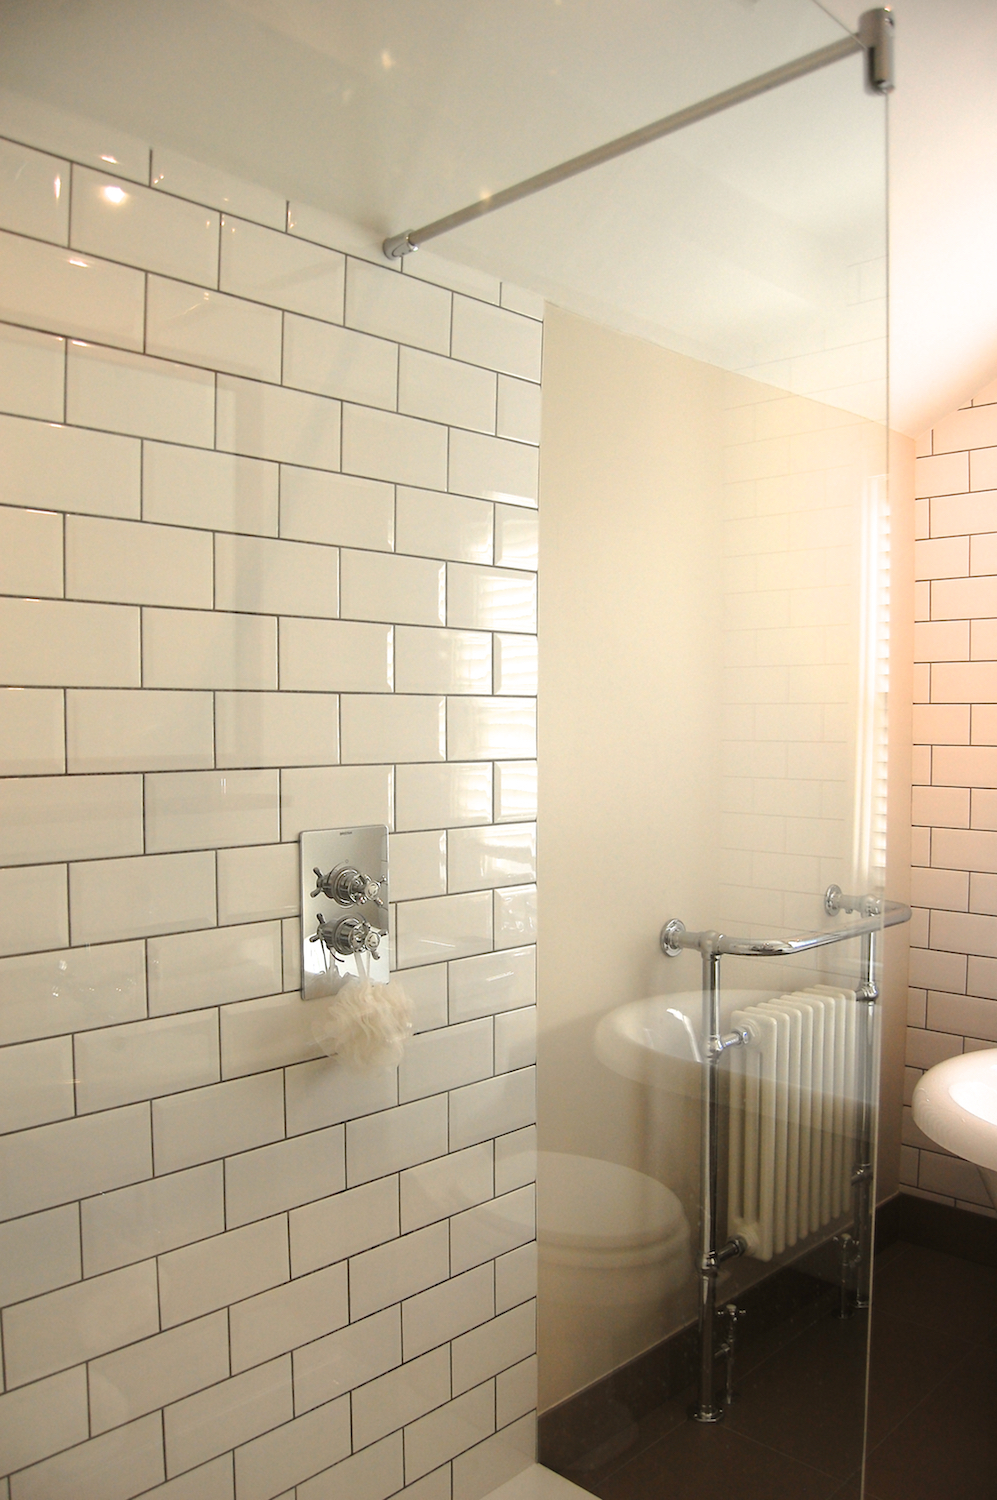 A character bathroom in Twickenham with metro tiles, porcelain floor, freestanding bath and large walk-in shower